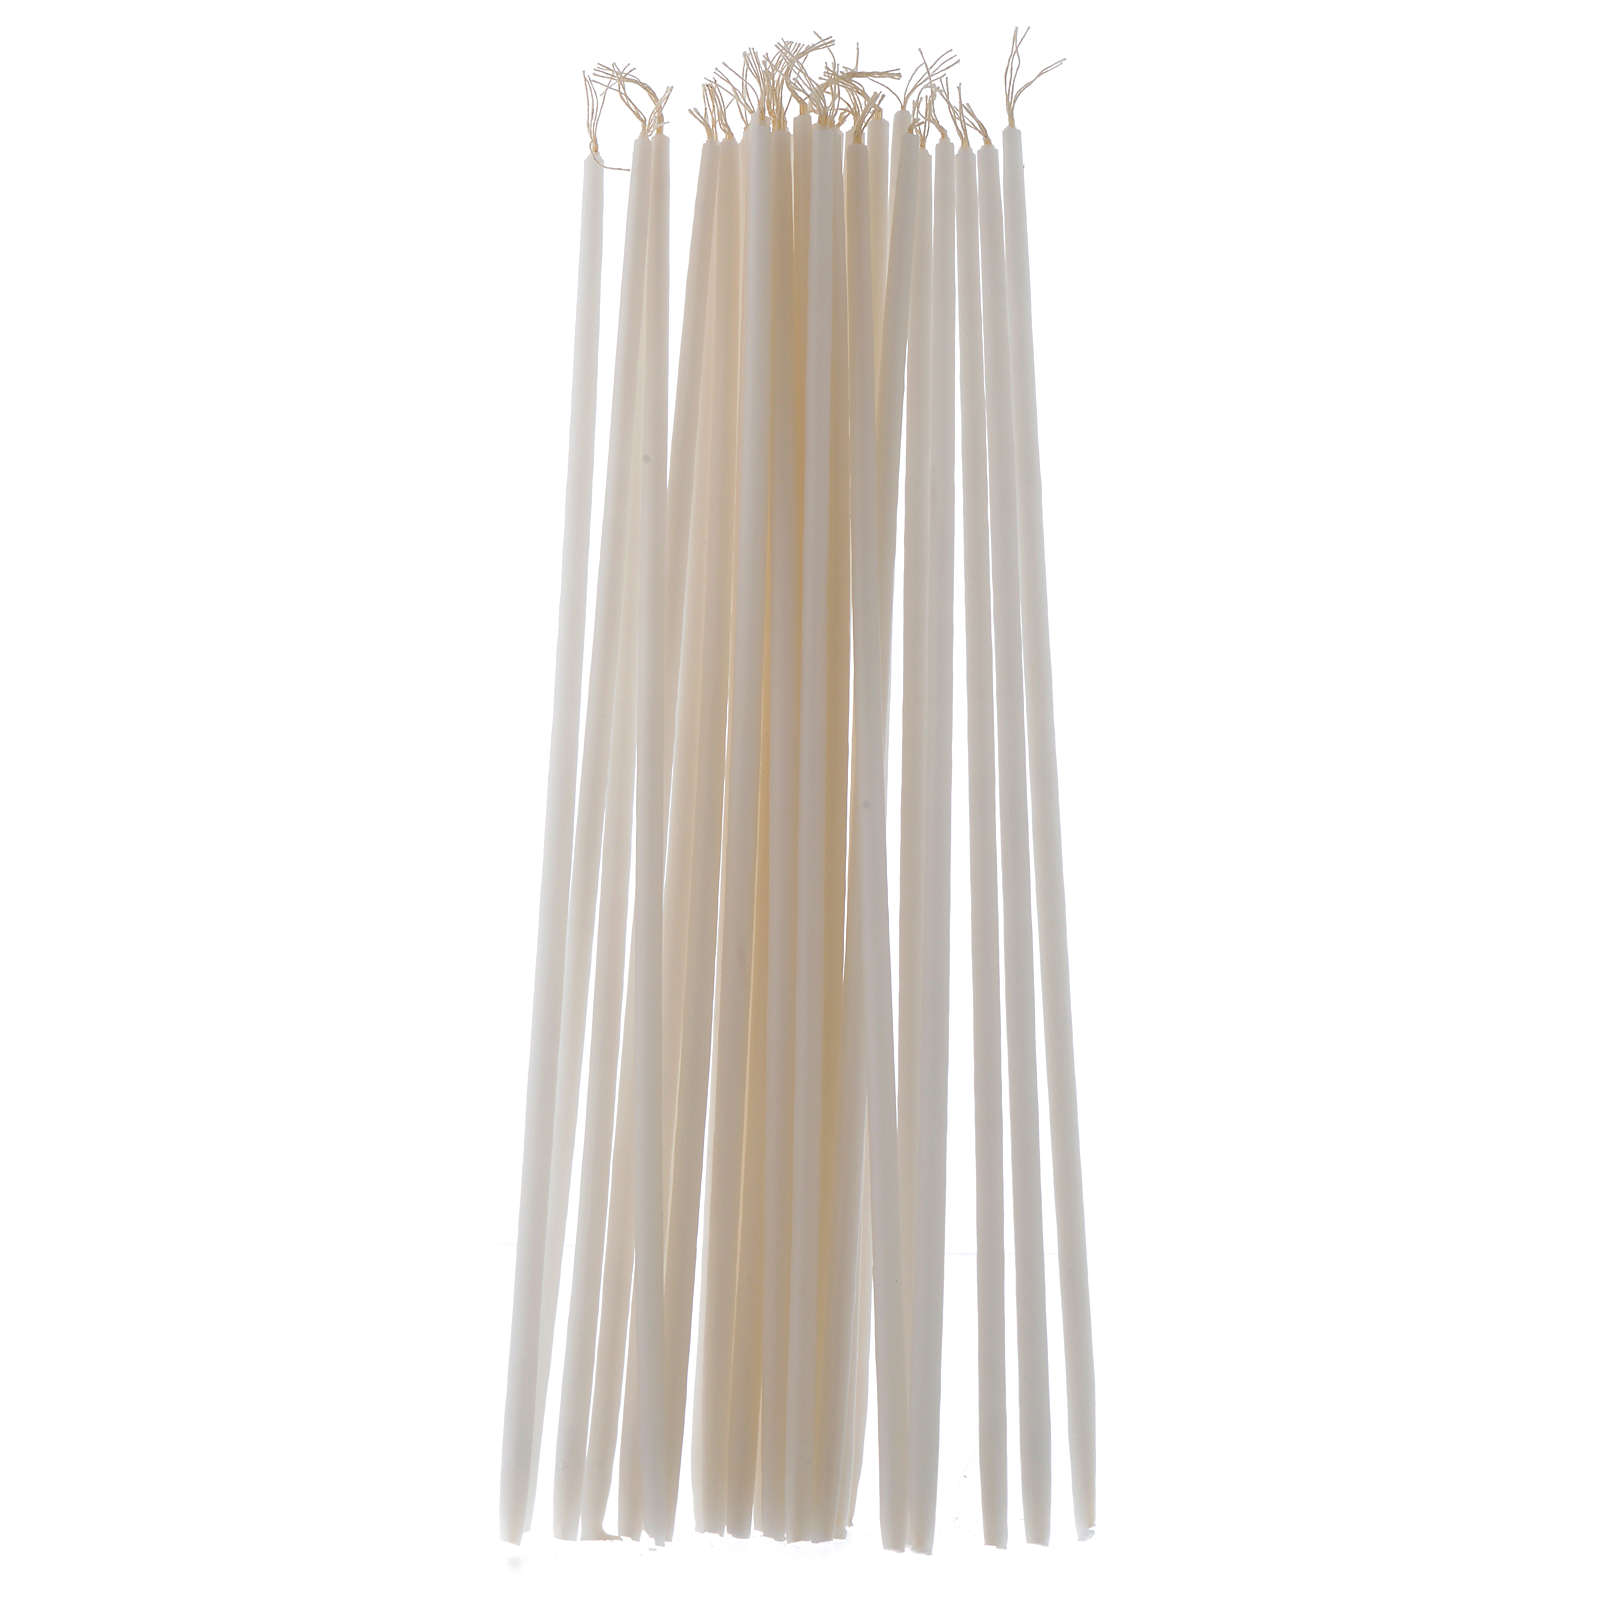 White Tape Candles Non-drippings - 100 pack 3